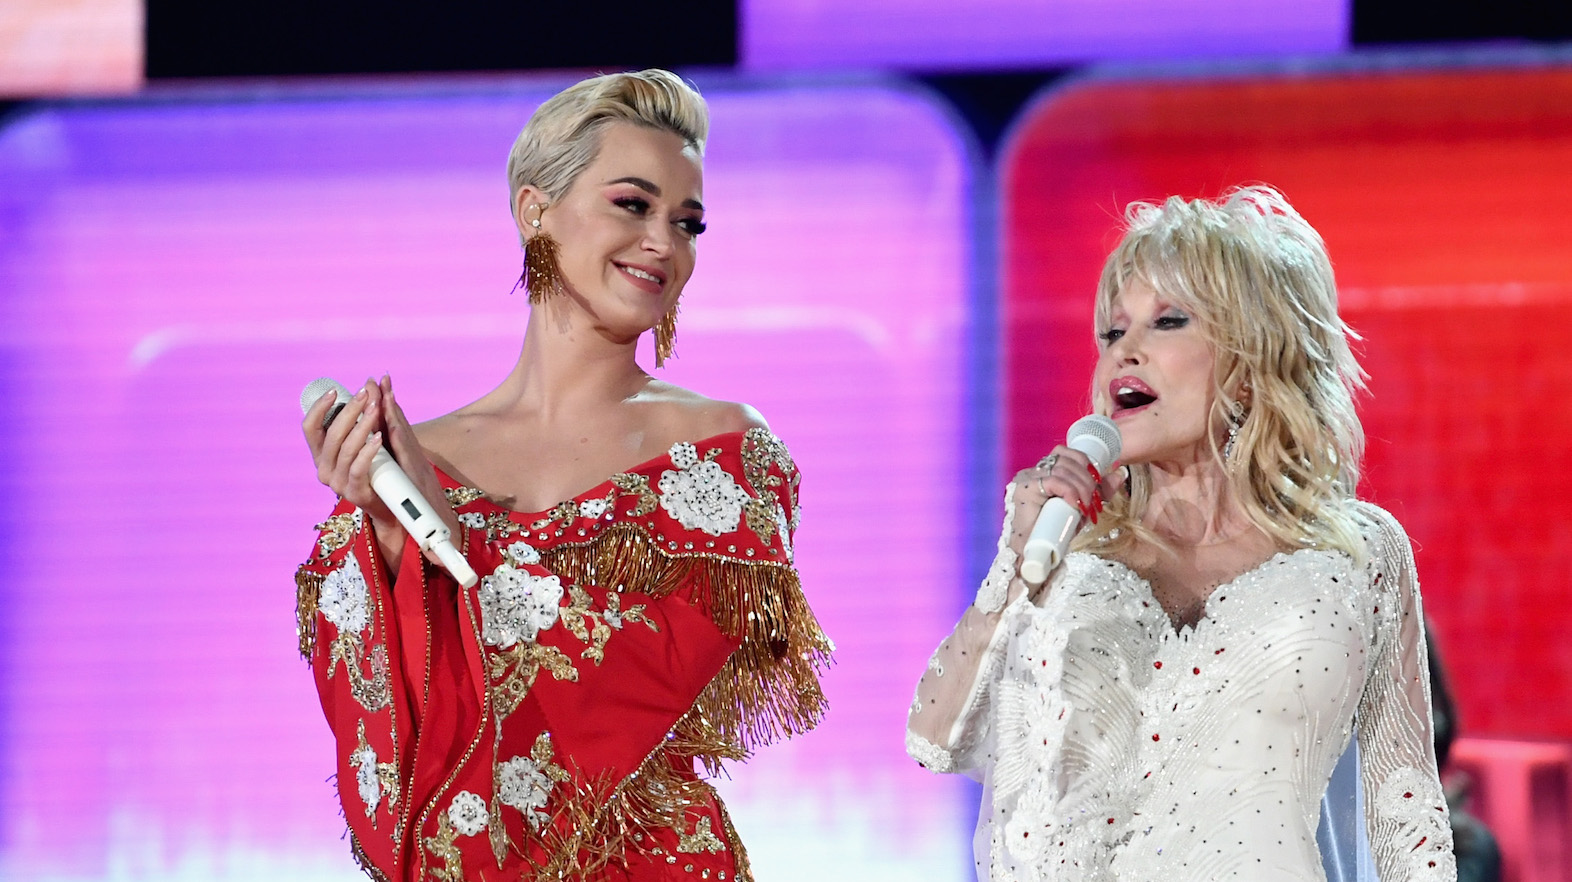 Katy Perry Accused of Upstaging Dolly Parton During Grammy's Tribute